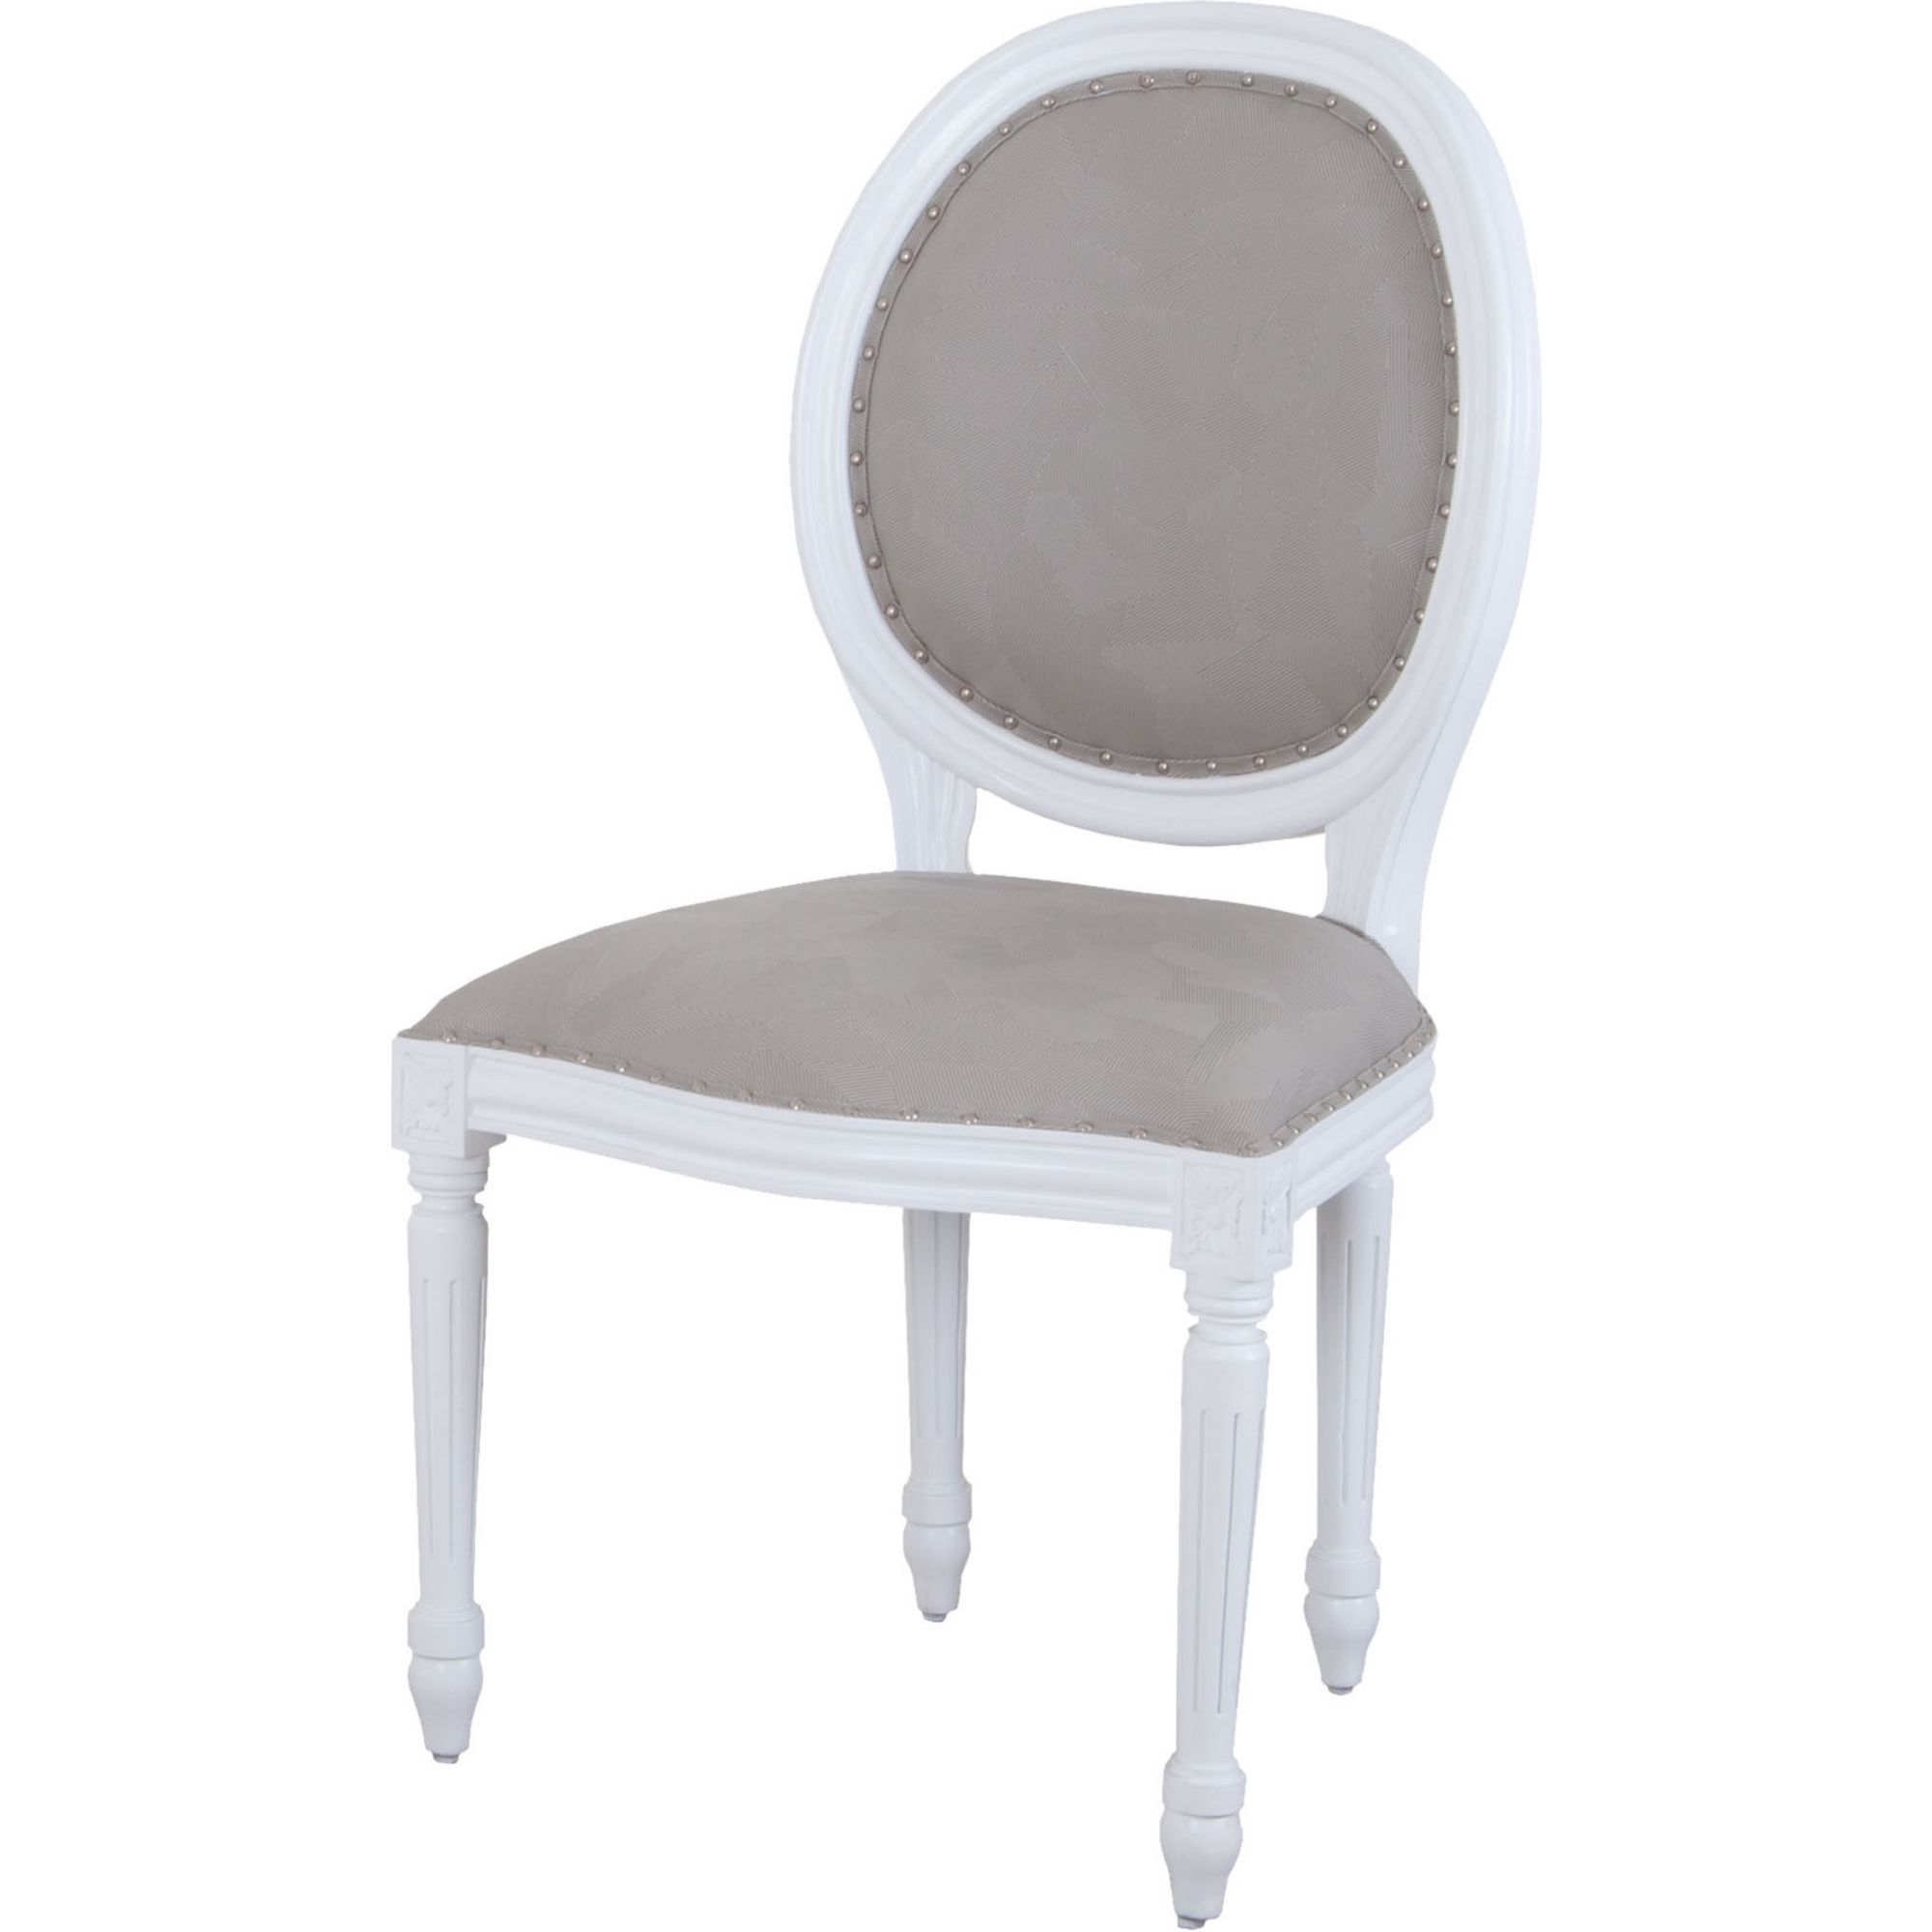 Round Back Dining Room Chairs: Viola Round Back Dining Chair In White W/ Grey Fabric By